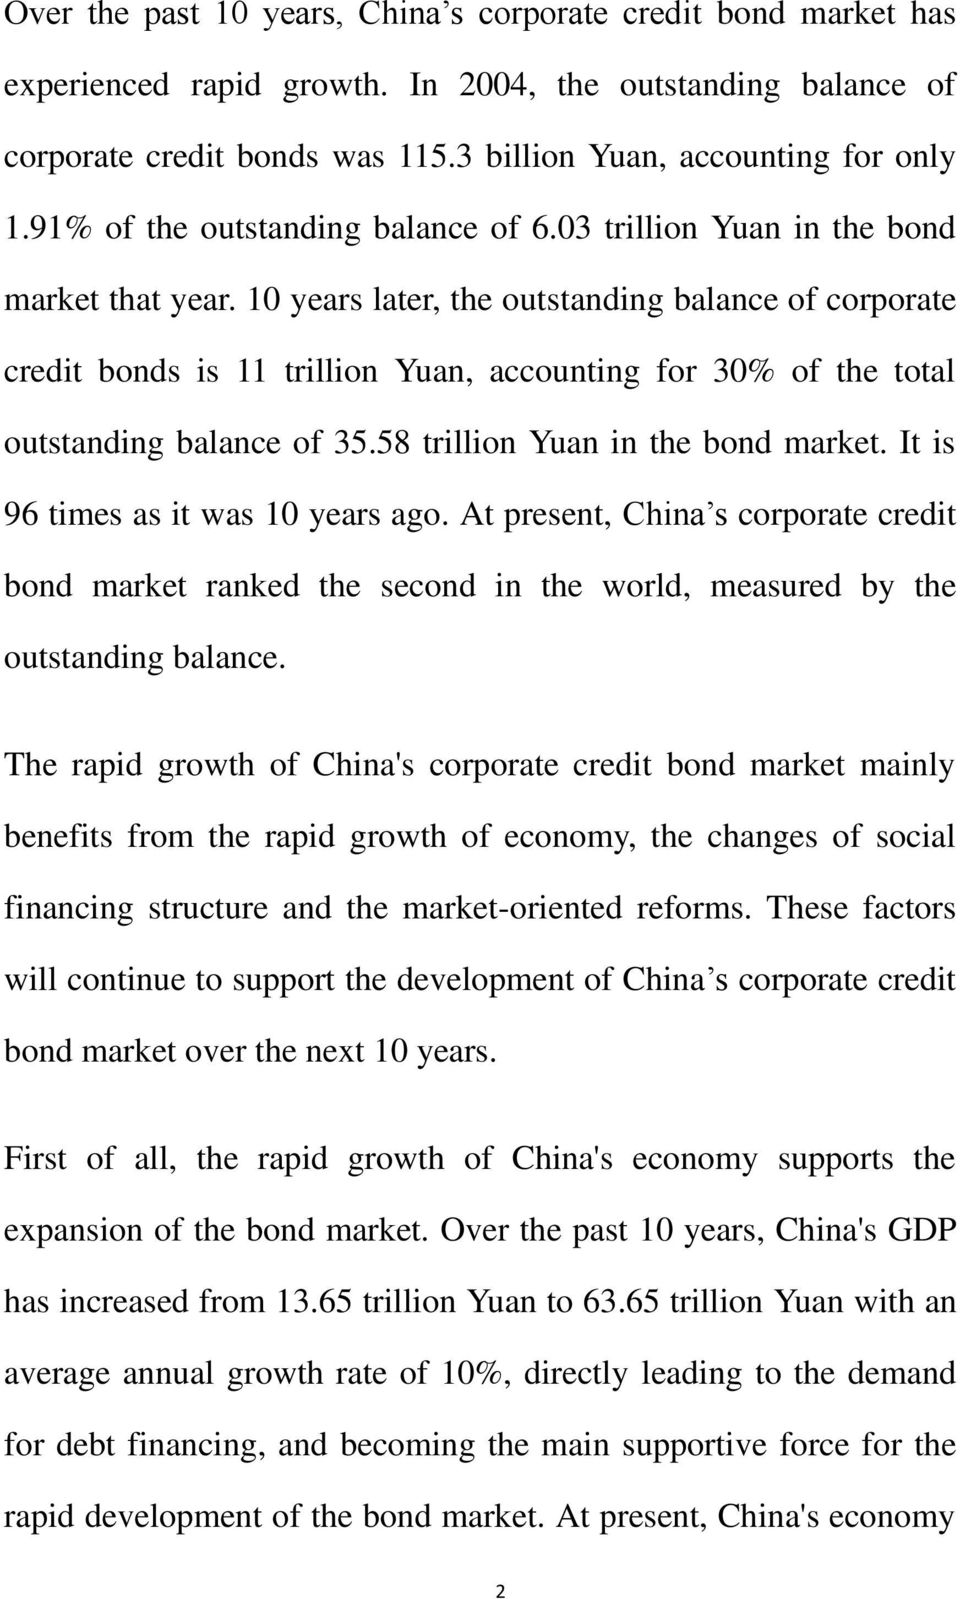 10 years later, the outstanding balance of corporate credit bonds is 11 trillion Yuan, accounting for 30% of the total outstanding balance of 35.58 trillion Yuan in the bond market.